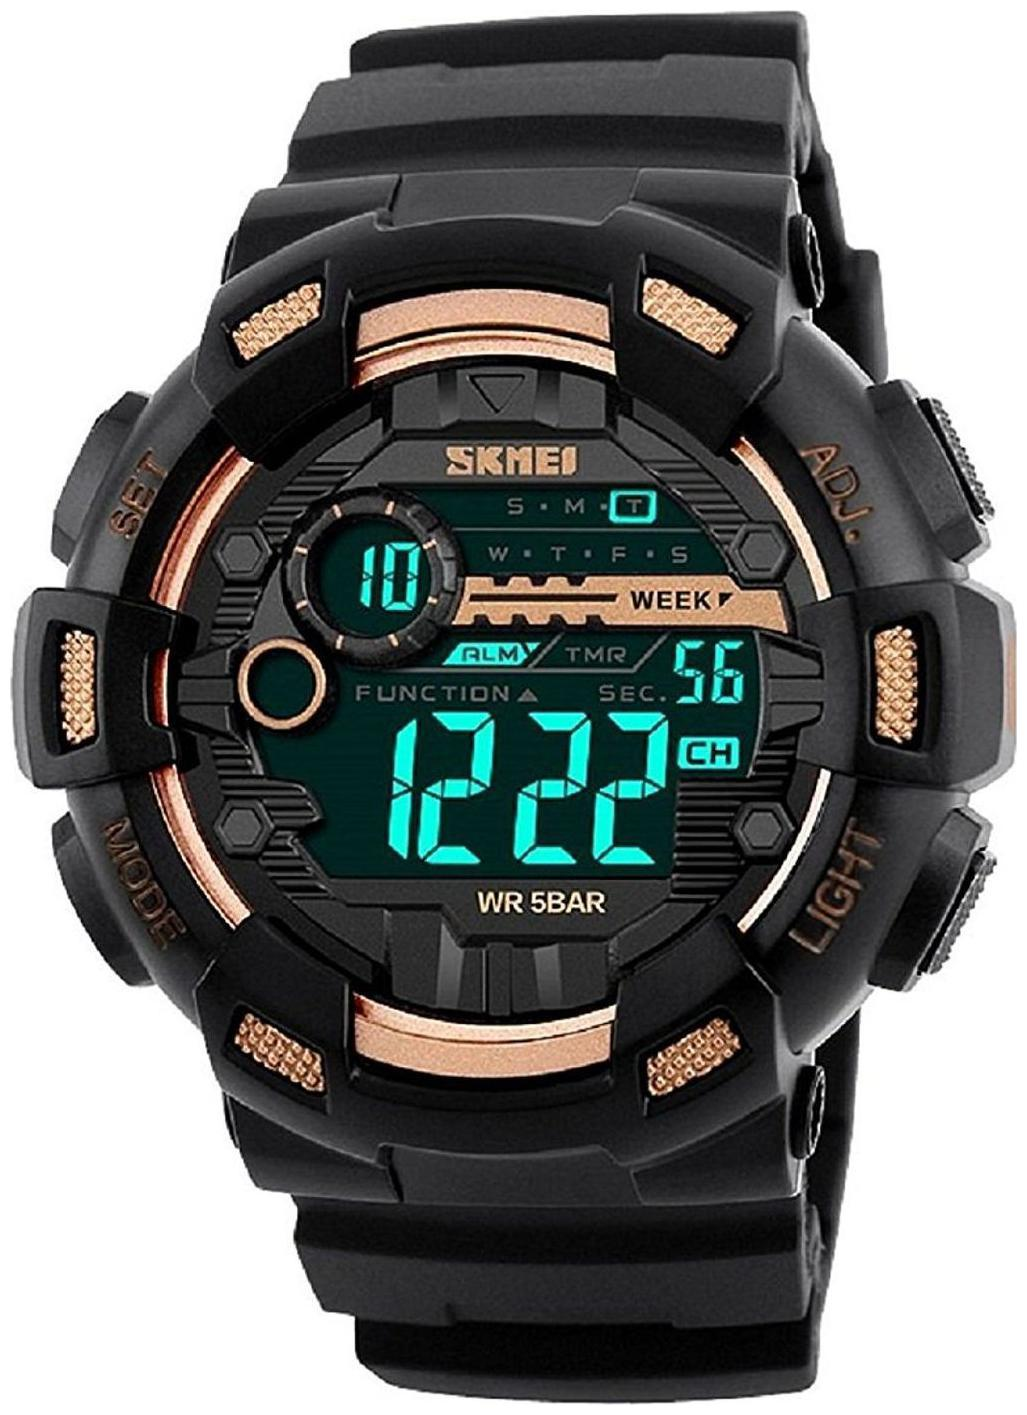 Skmei 1243 Gold Chronograph Water Resistant Digital Sports Watch  For Men   Boys by Watches Mart